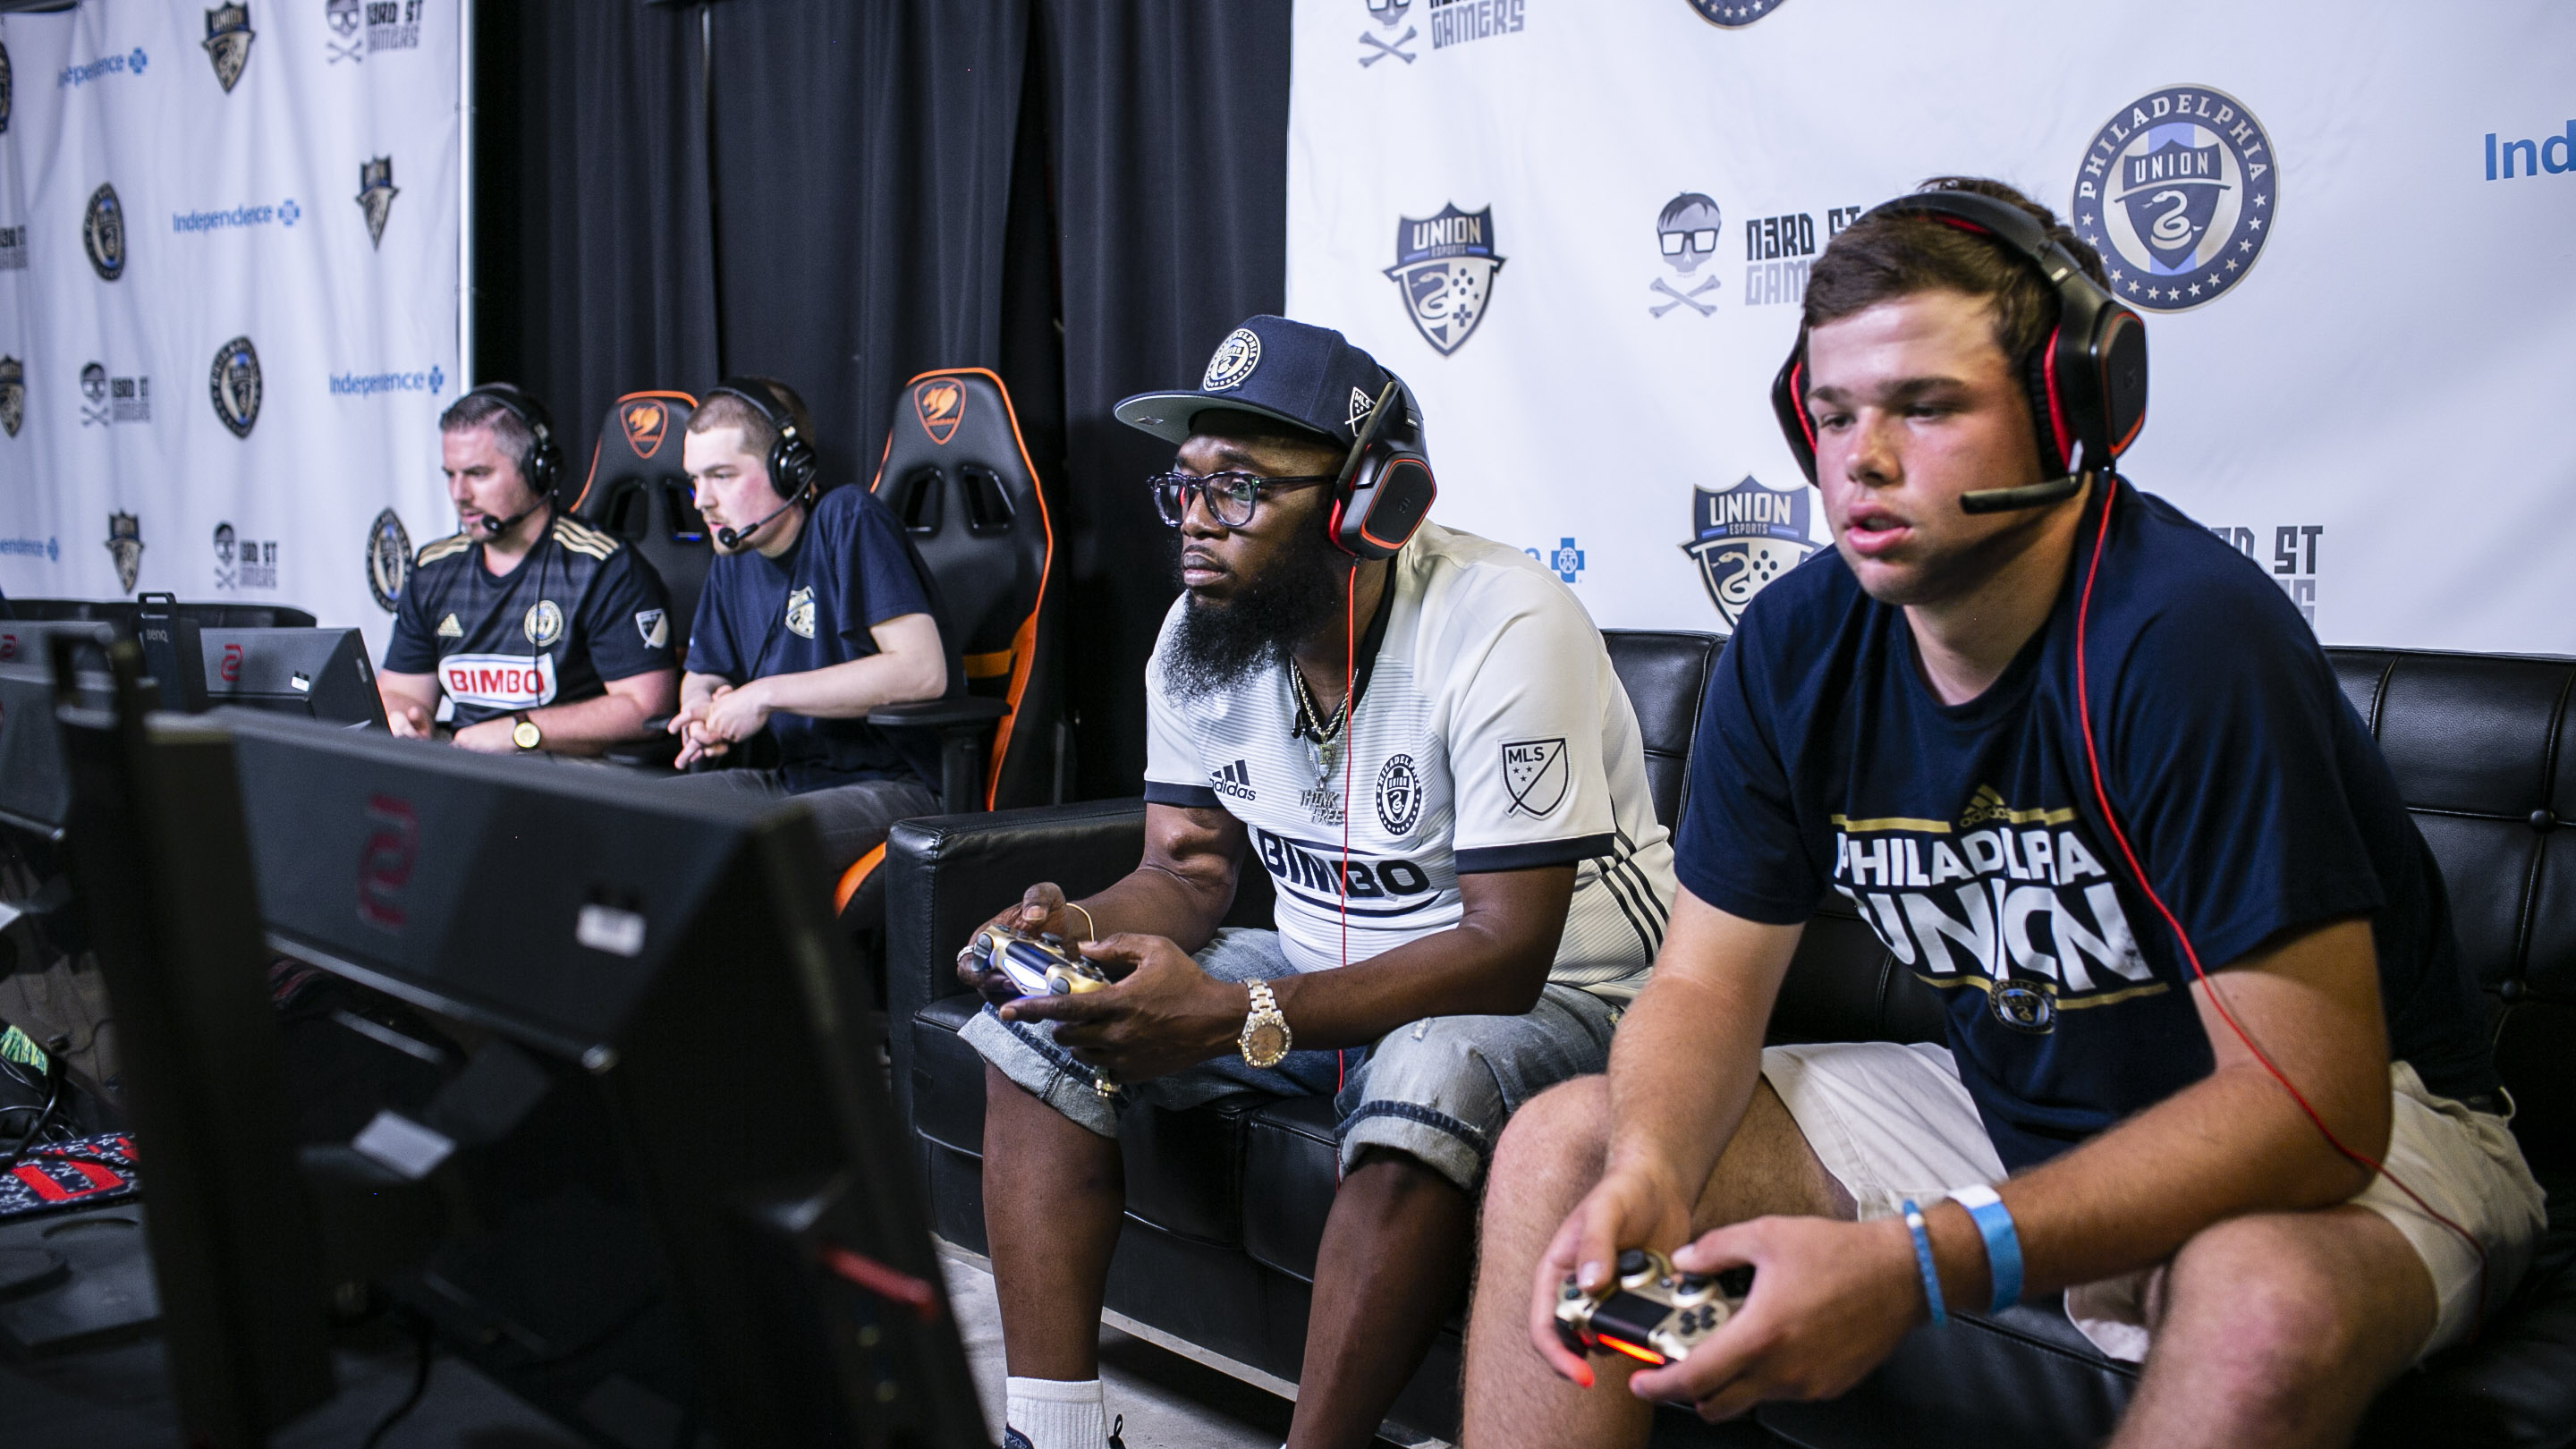 Union 2v2 Pro-Am Charity FIFA Tournament